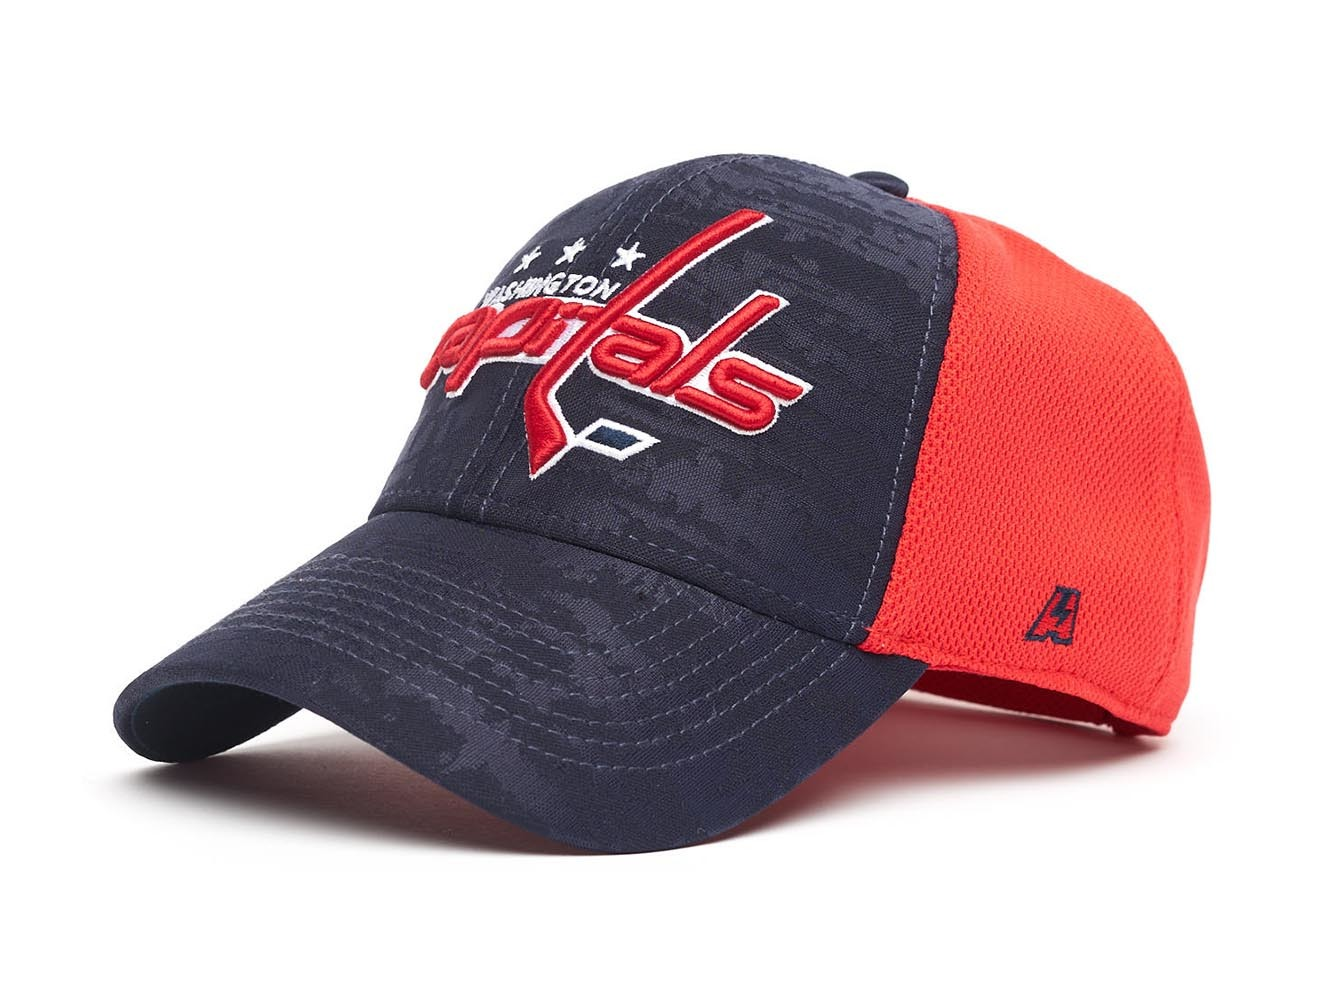 Бейсболка NHL Washington Capitals (размер S)